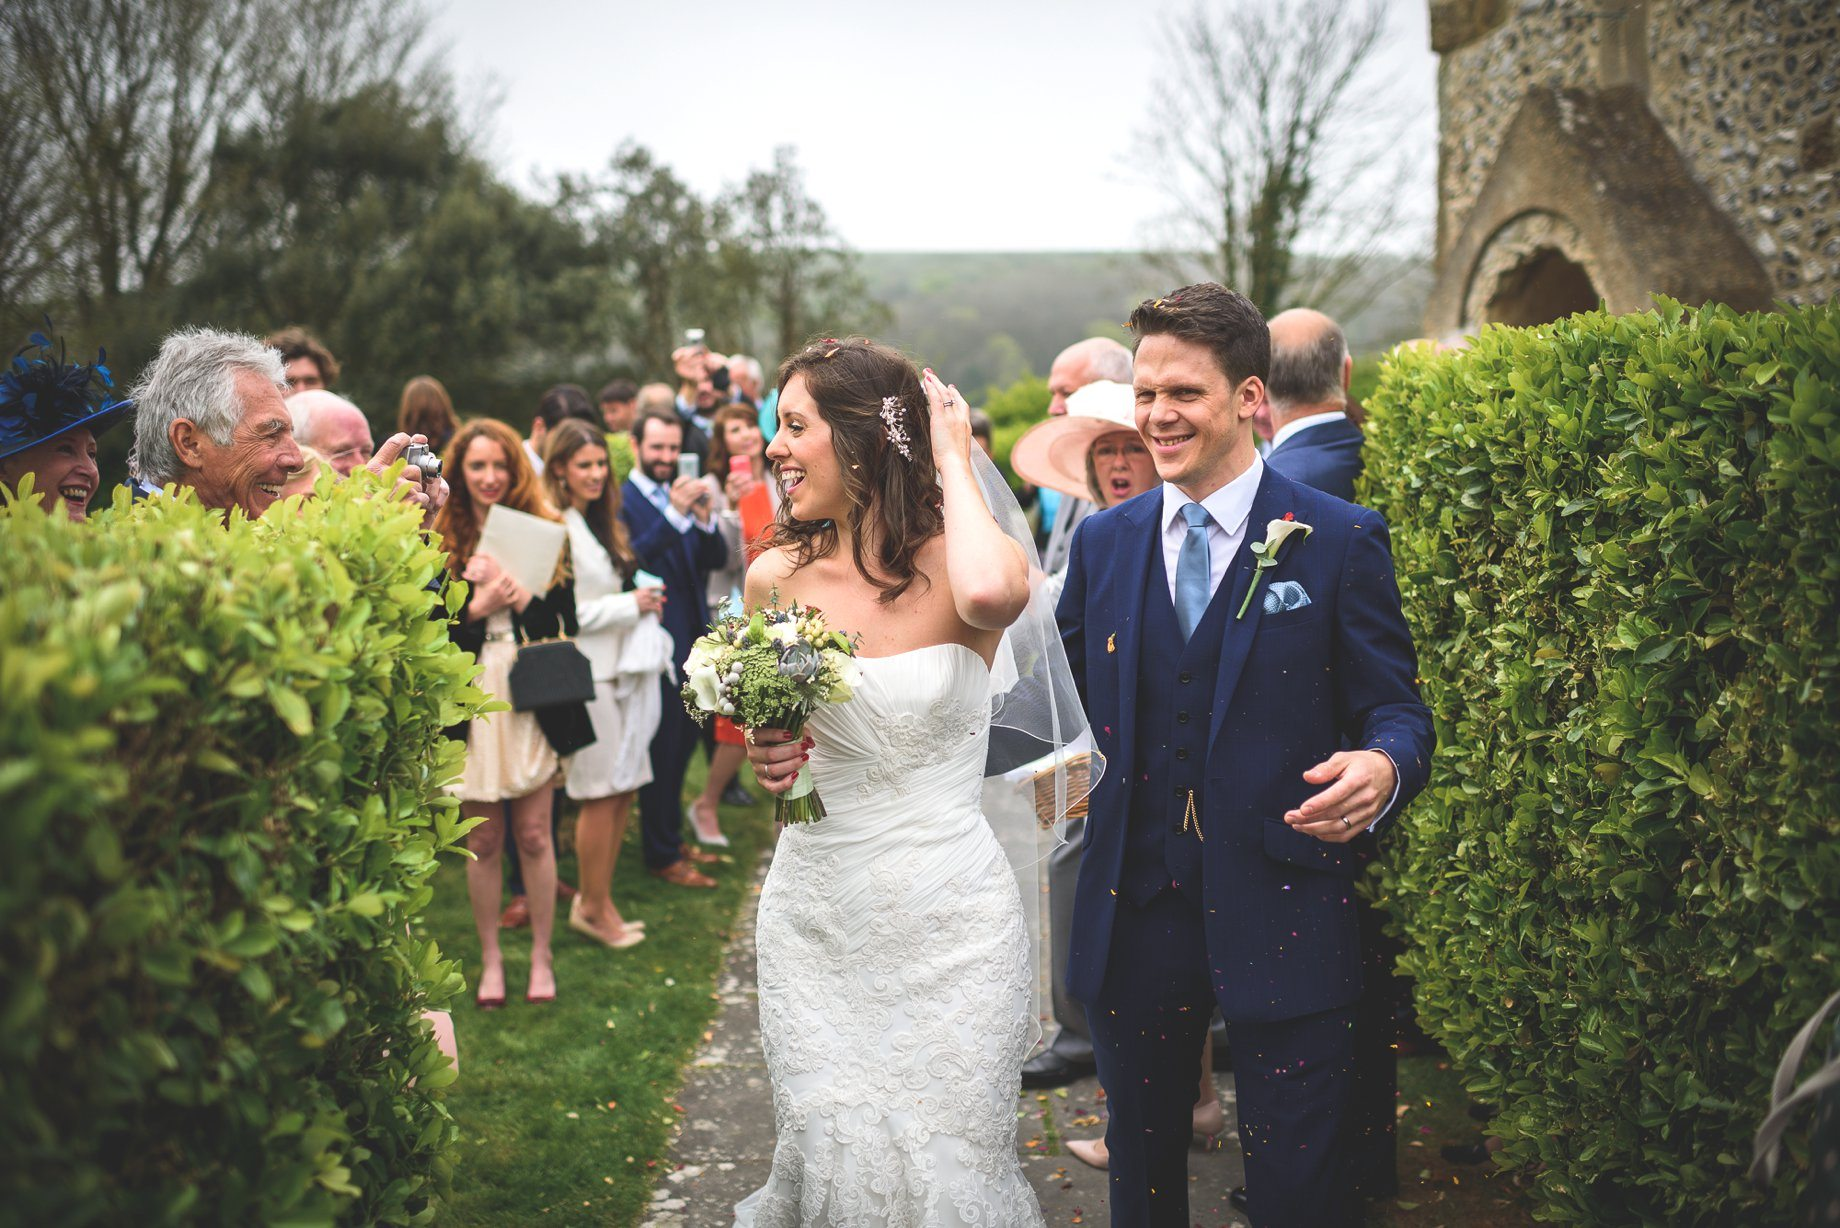 Louisa and Chris - West Sussex wedding photography (72 of 160)